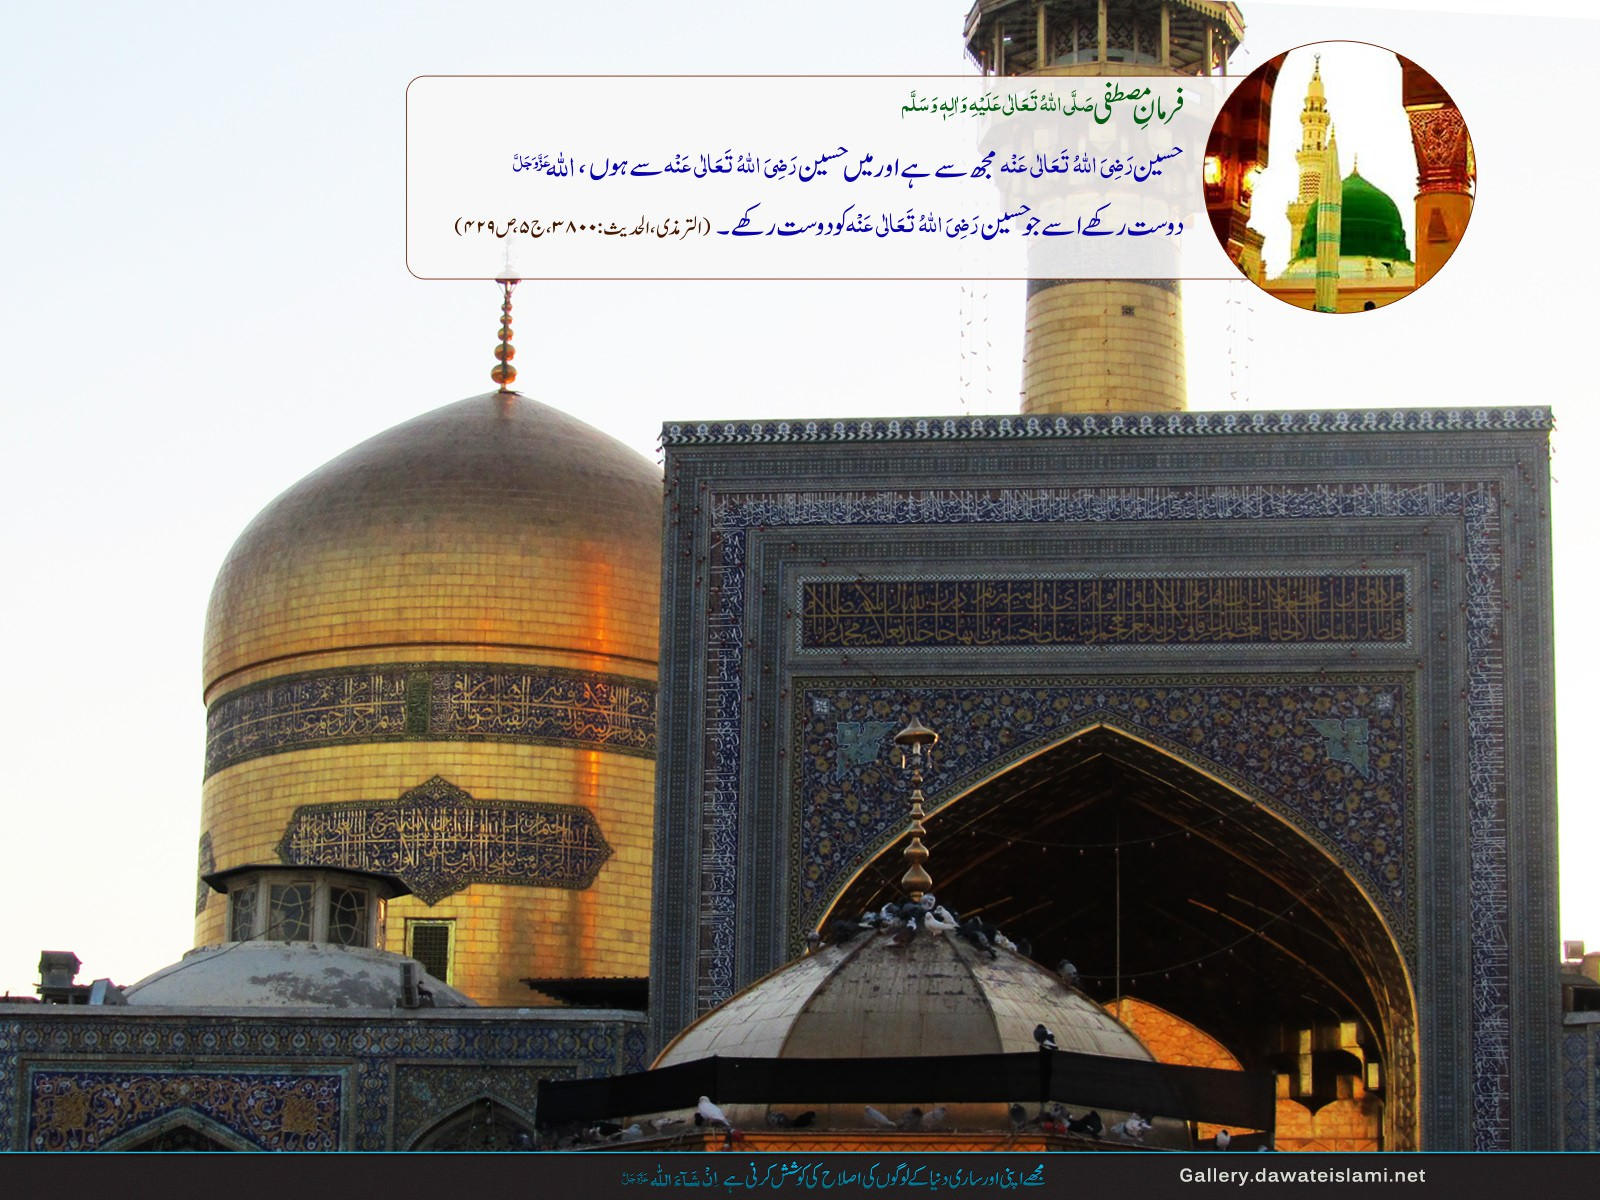 hazrat imam hussain Imam husayn was imam for a period of ten years, all but the last six months coinciding with the caliphate of mu'awiyah imam husayn lived under the most difficult outward conditions of suppression and persecution.